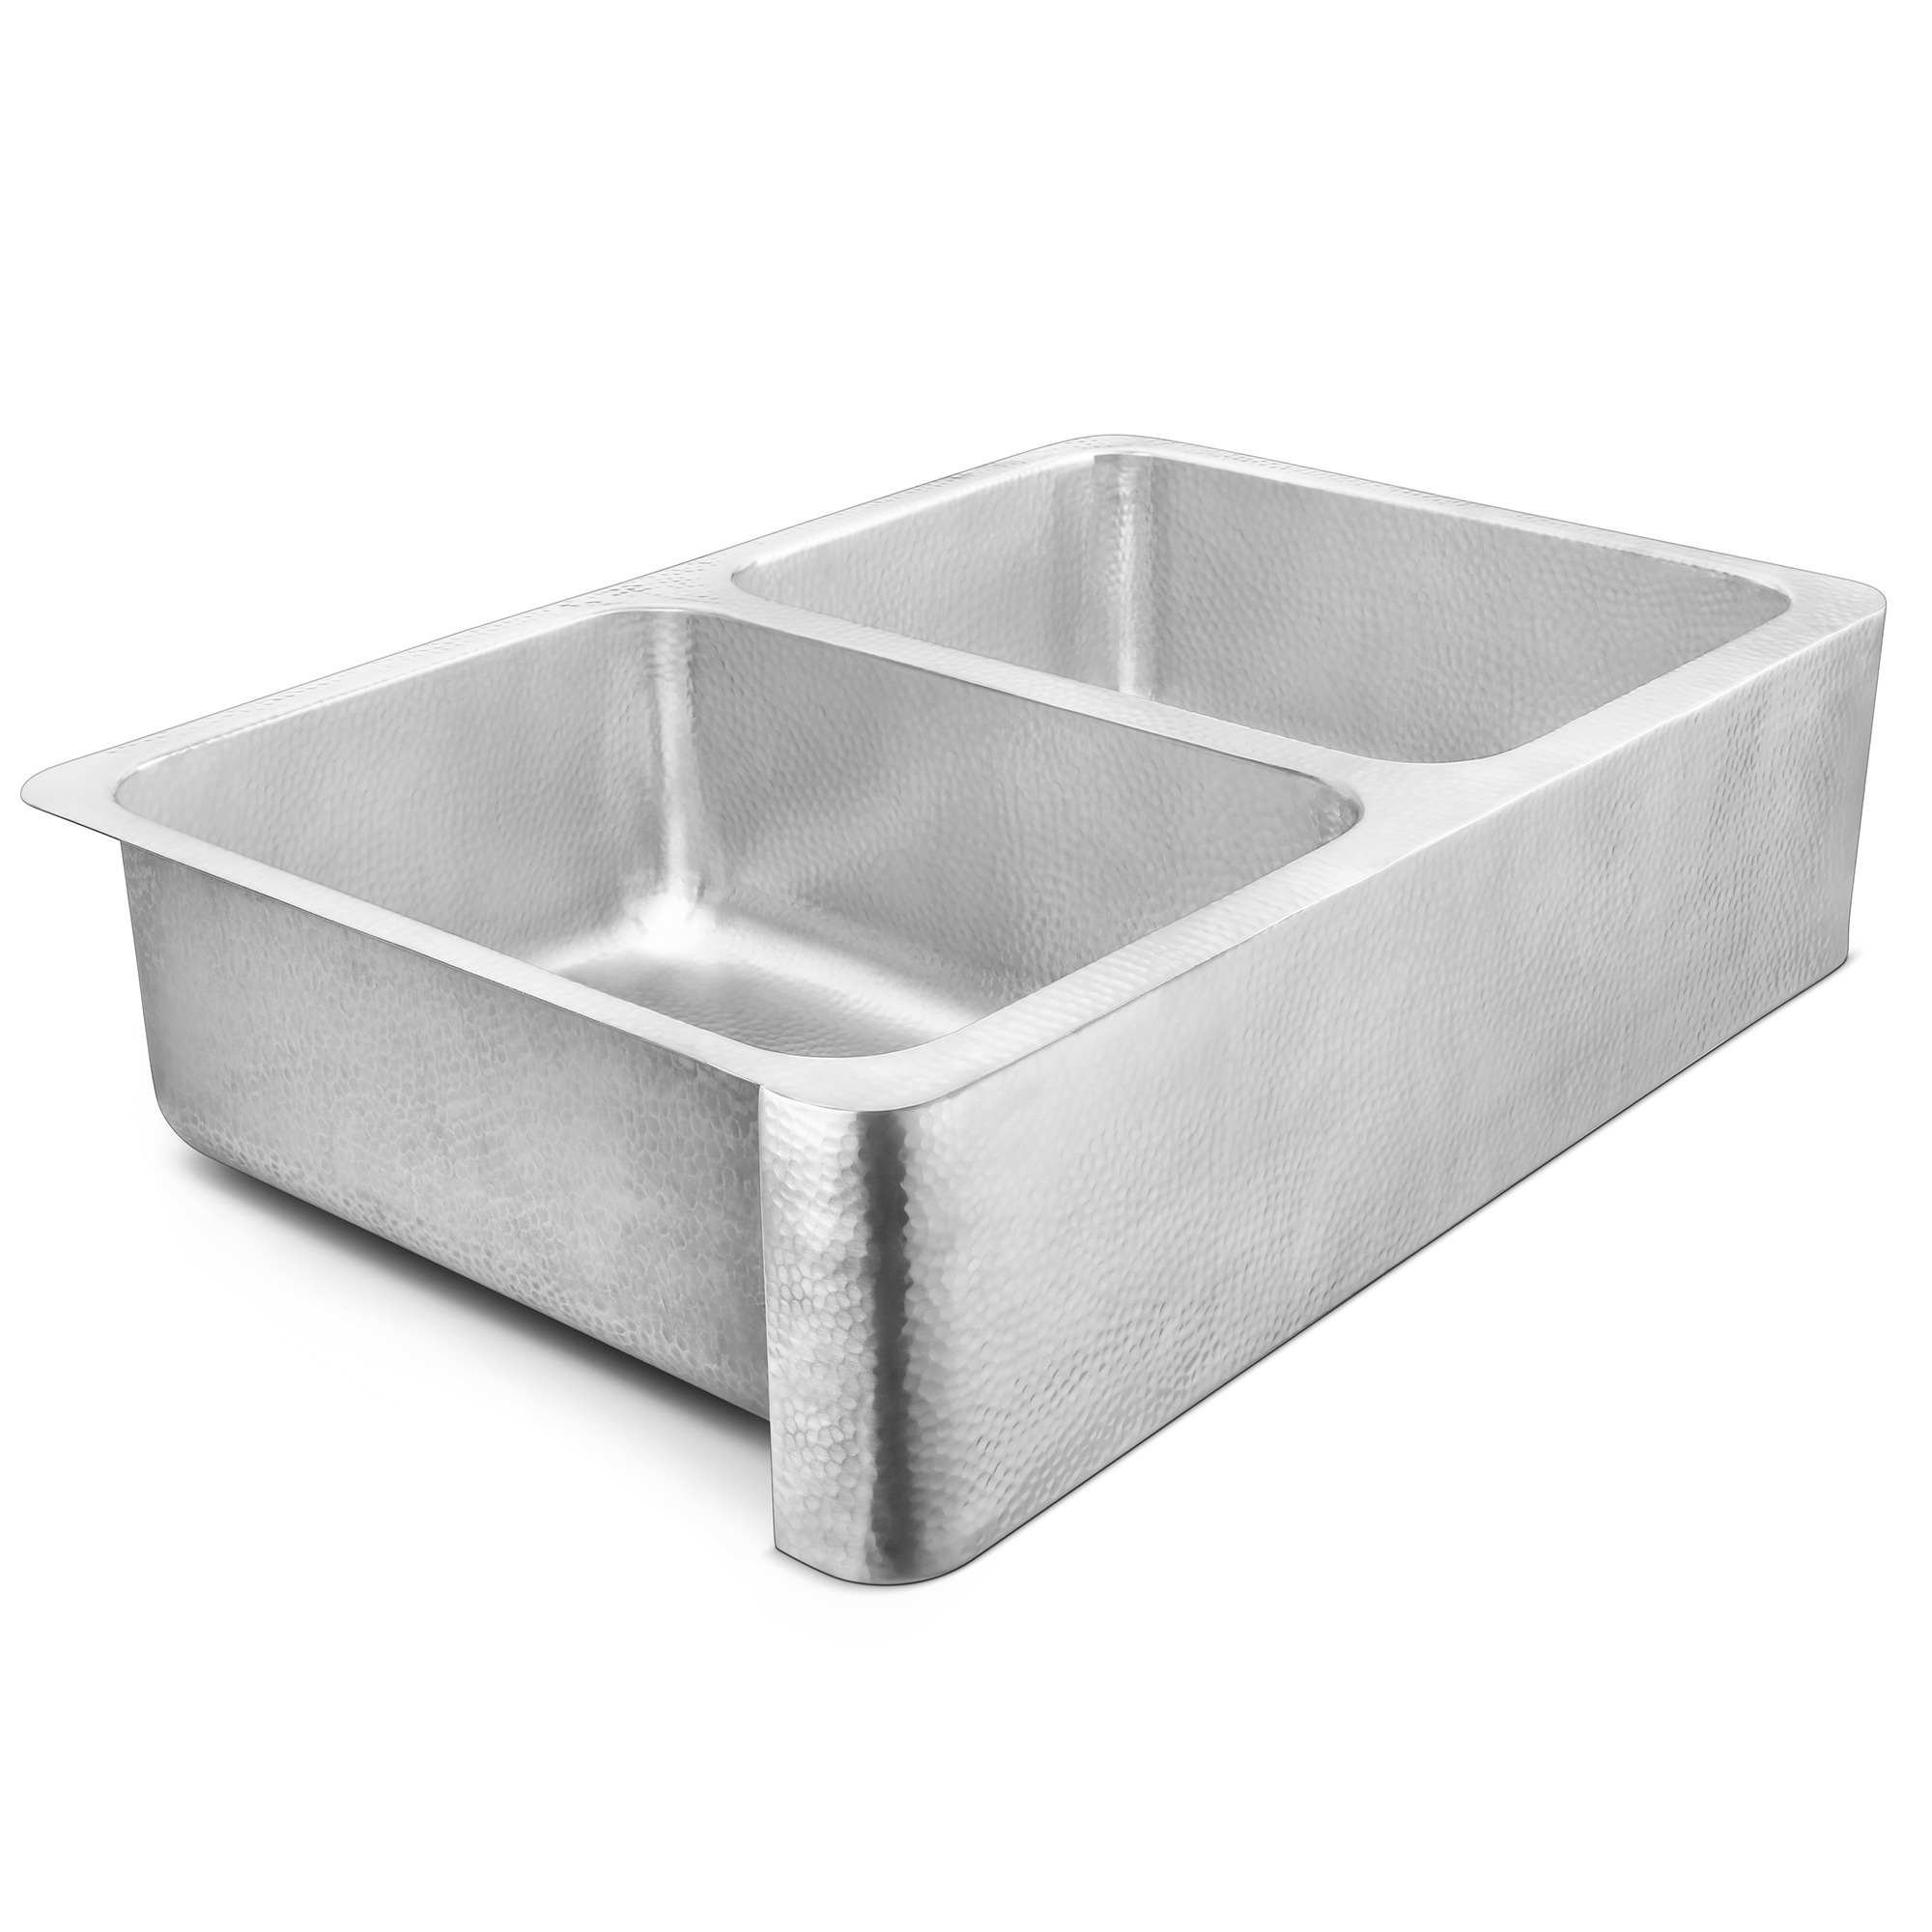 anning crafted stainless steel in